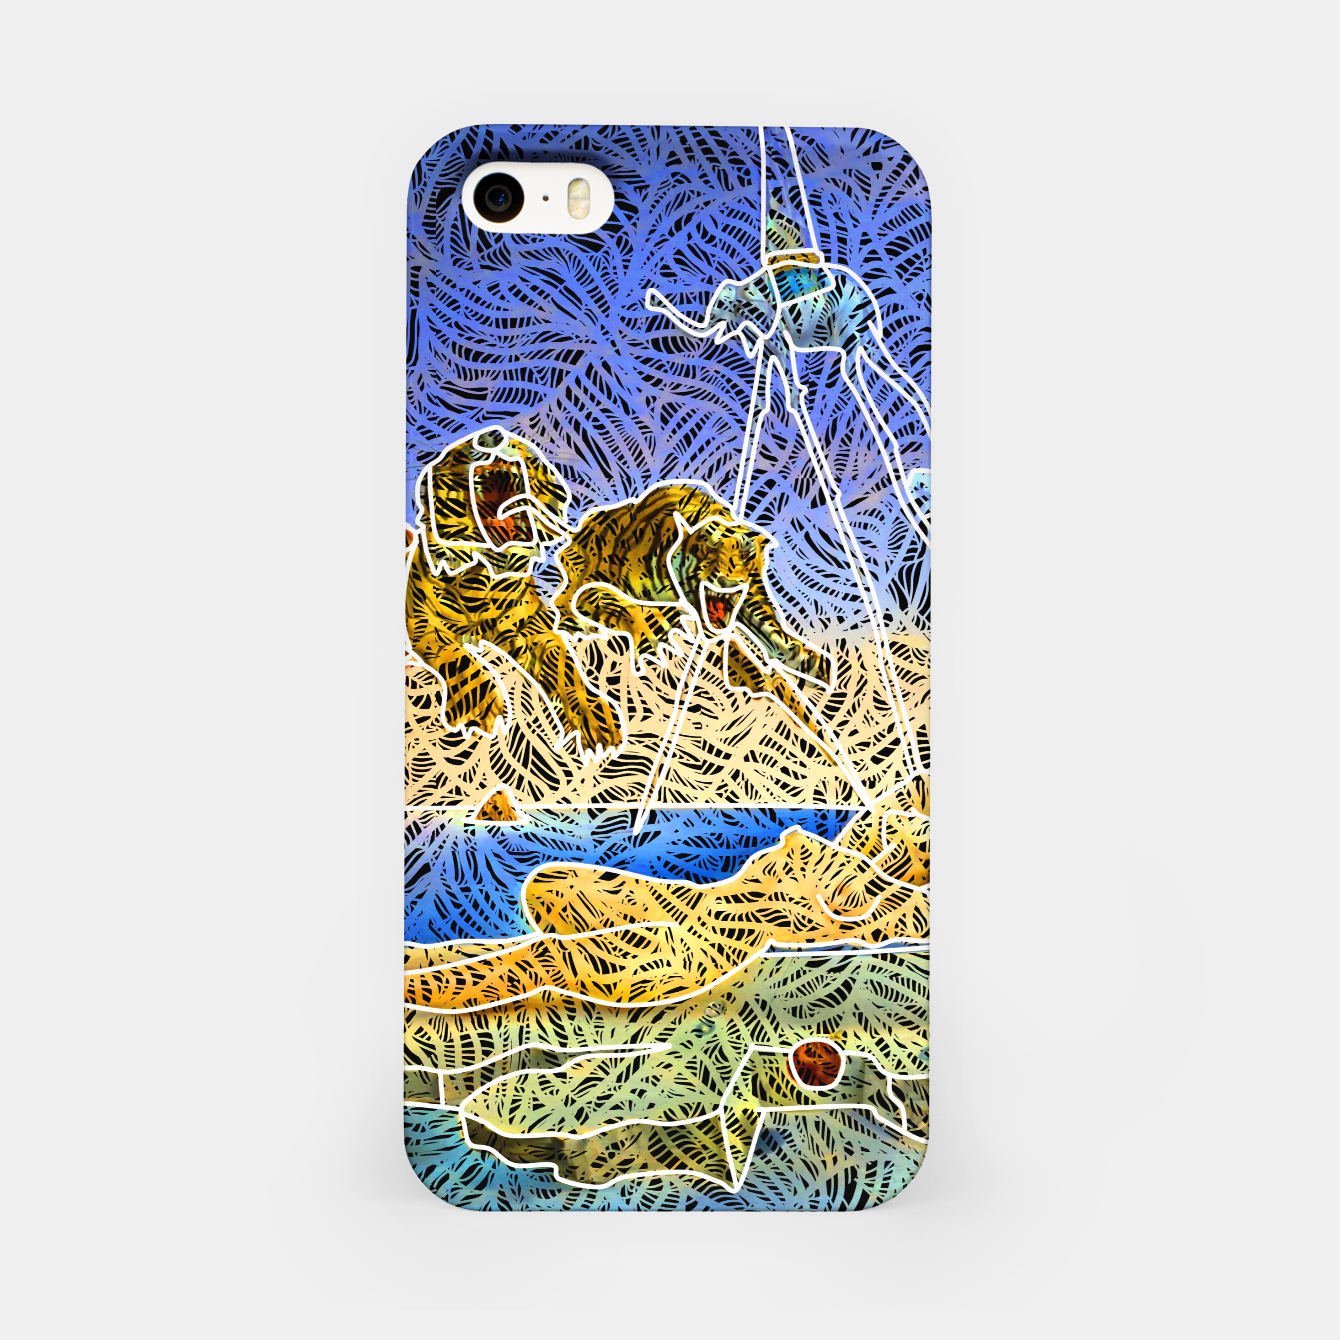 Image of d iPhone Case - Live Heroes